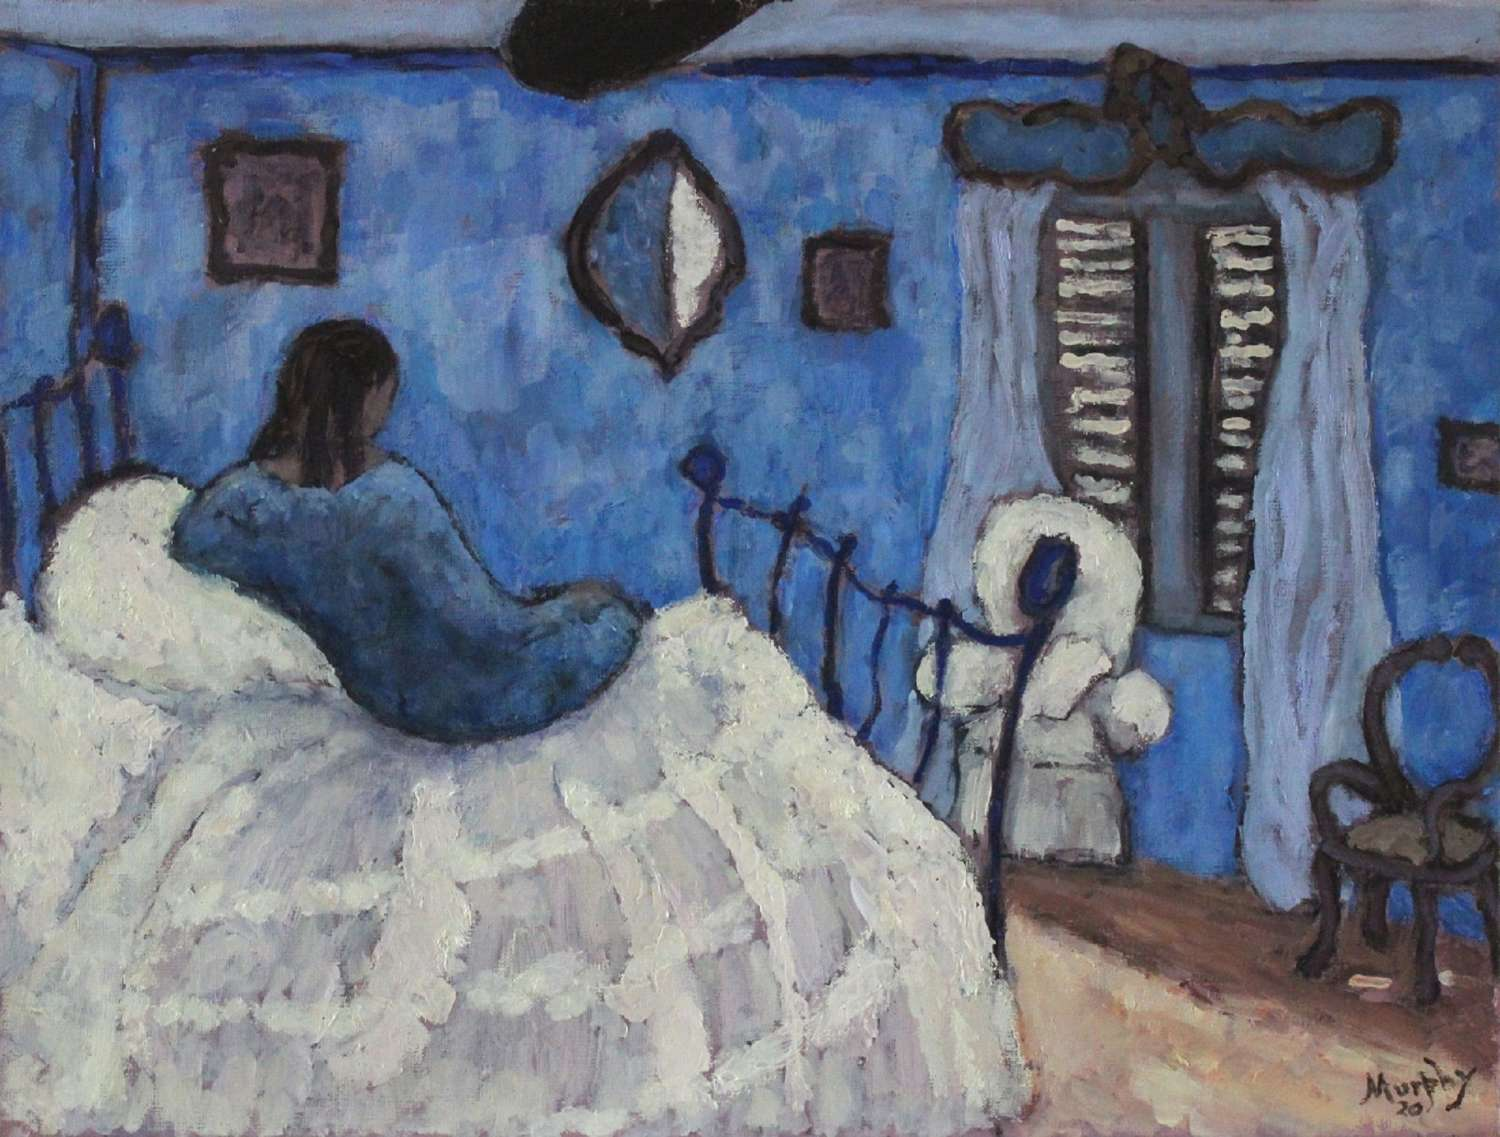 Anthony Murphy. Blue Bedroom